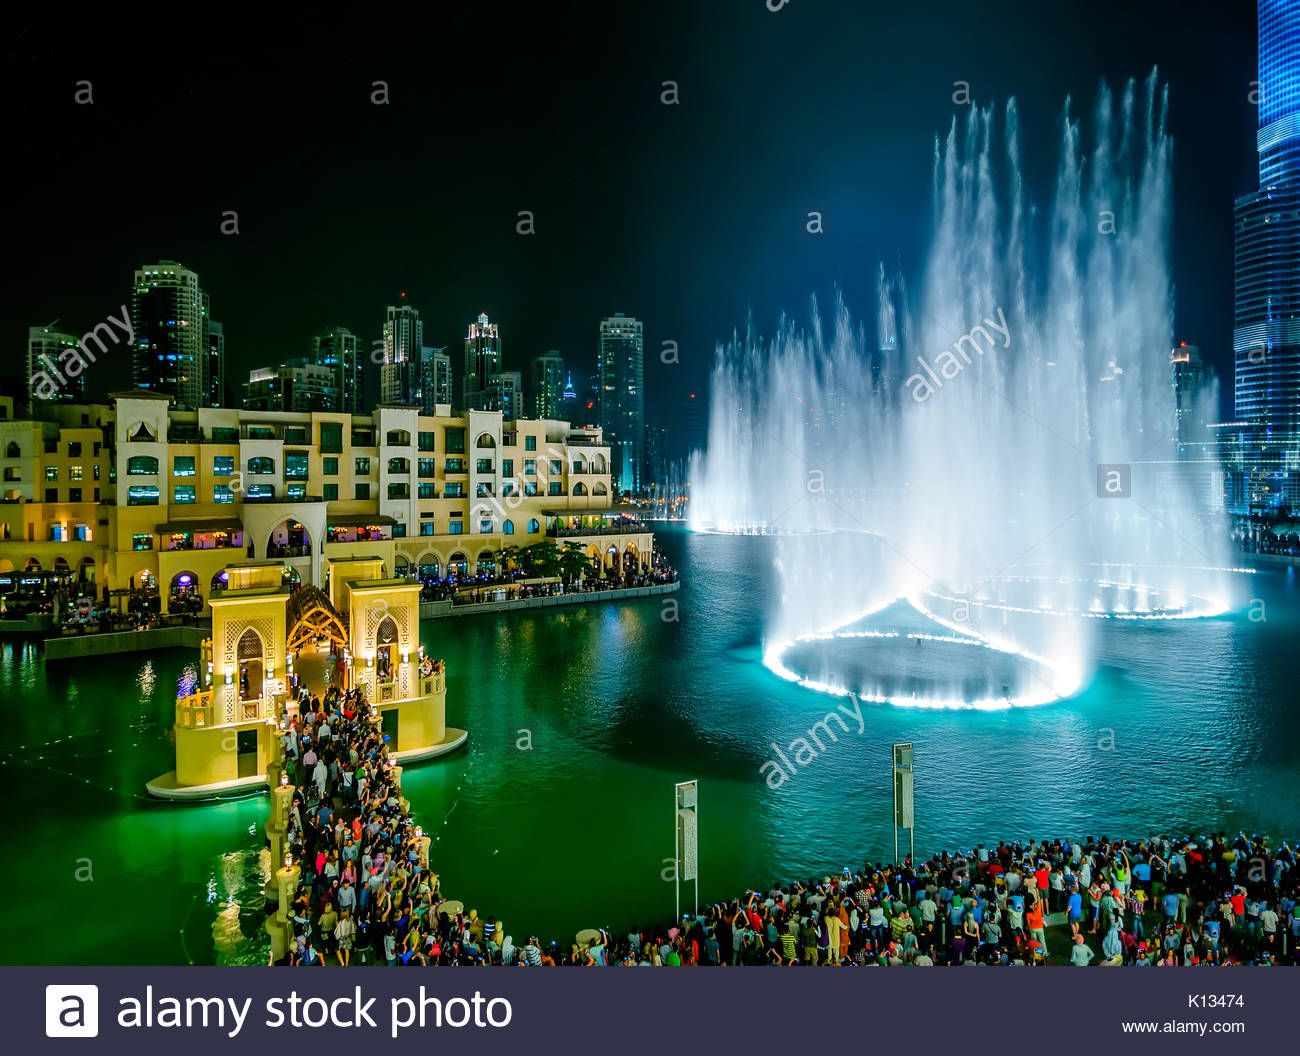 DUBAI, UAE - APR 14, 2013: Famous dubai fountain view near Burj Khalifa, Dubai, United Arab Emirates - Stock Image